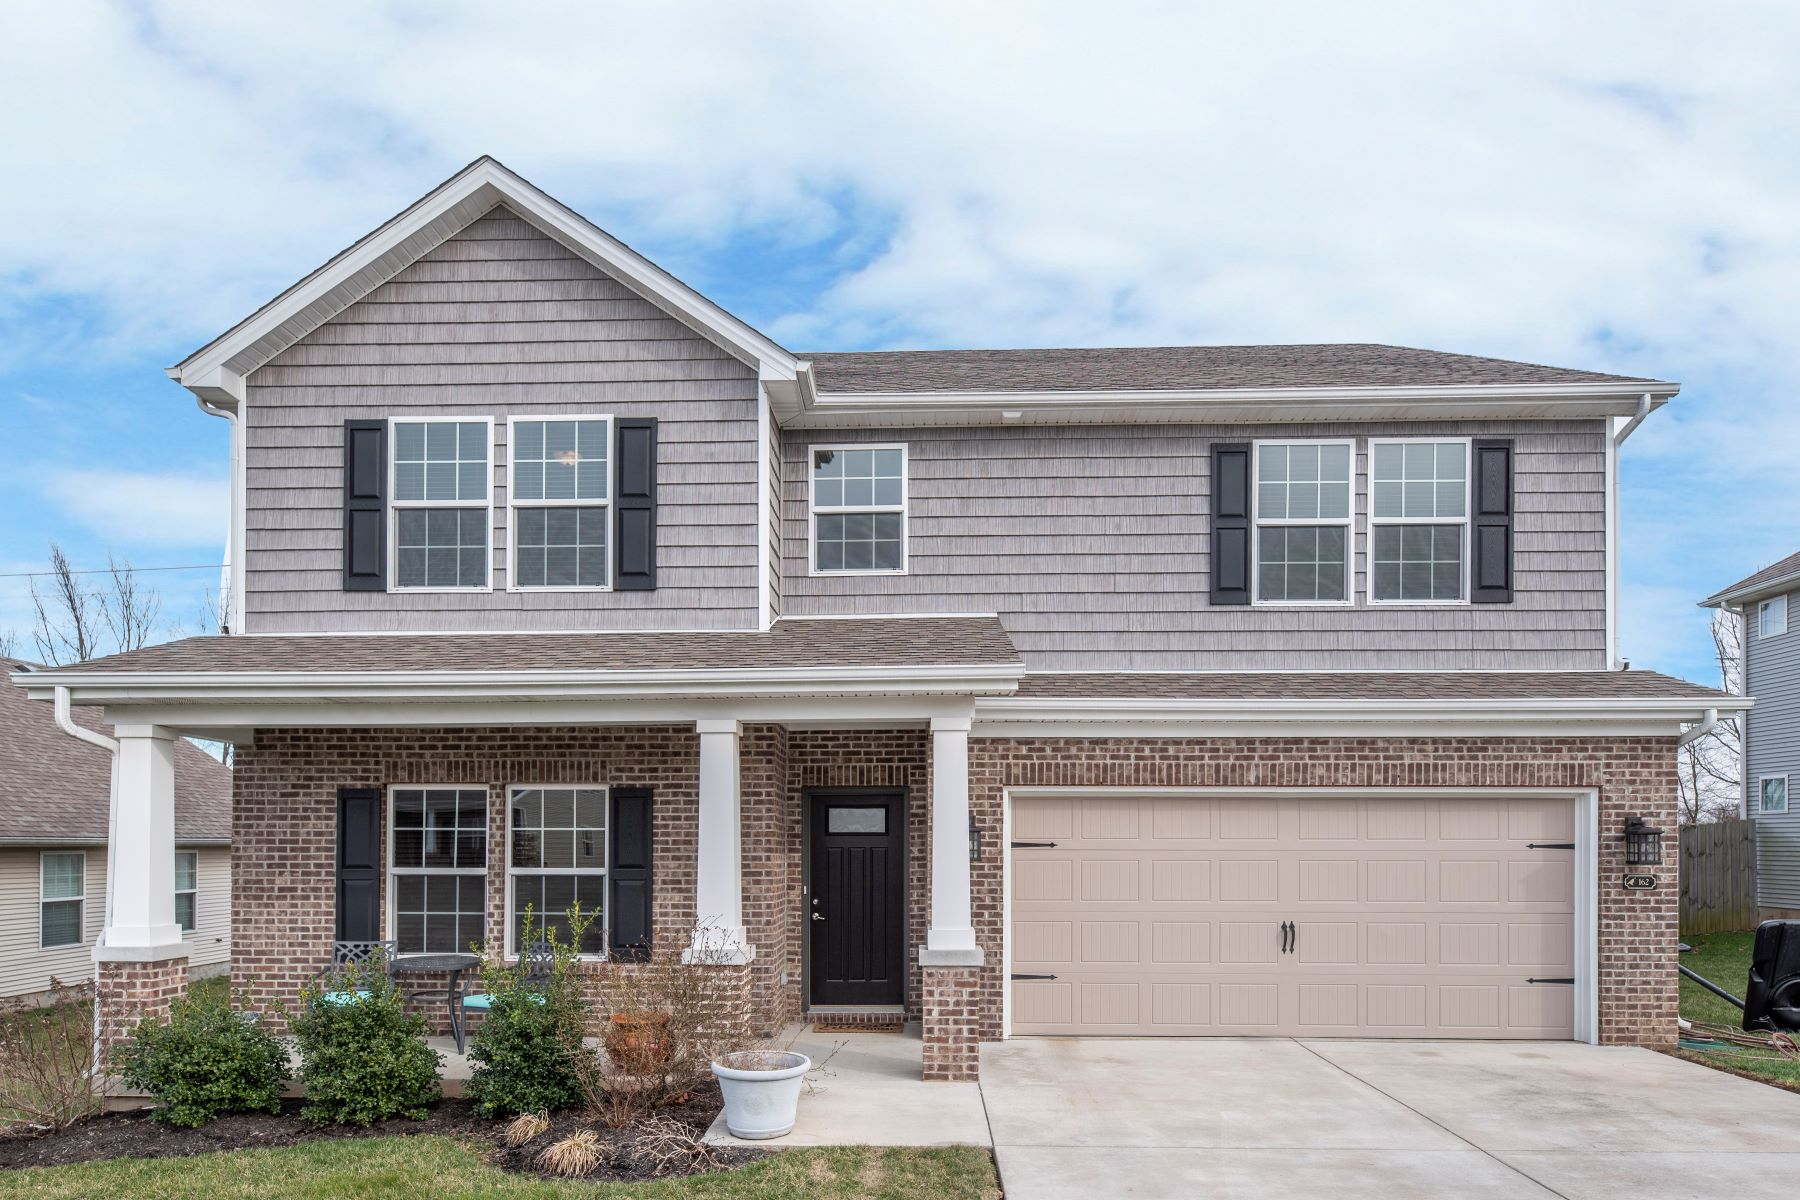 Single Family Home for Sale at 162 Sutton Place Boulevard 162 Sutton Place Boulevard Georgetown, Kentucky 40324 United States